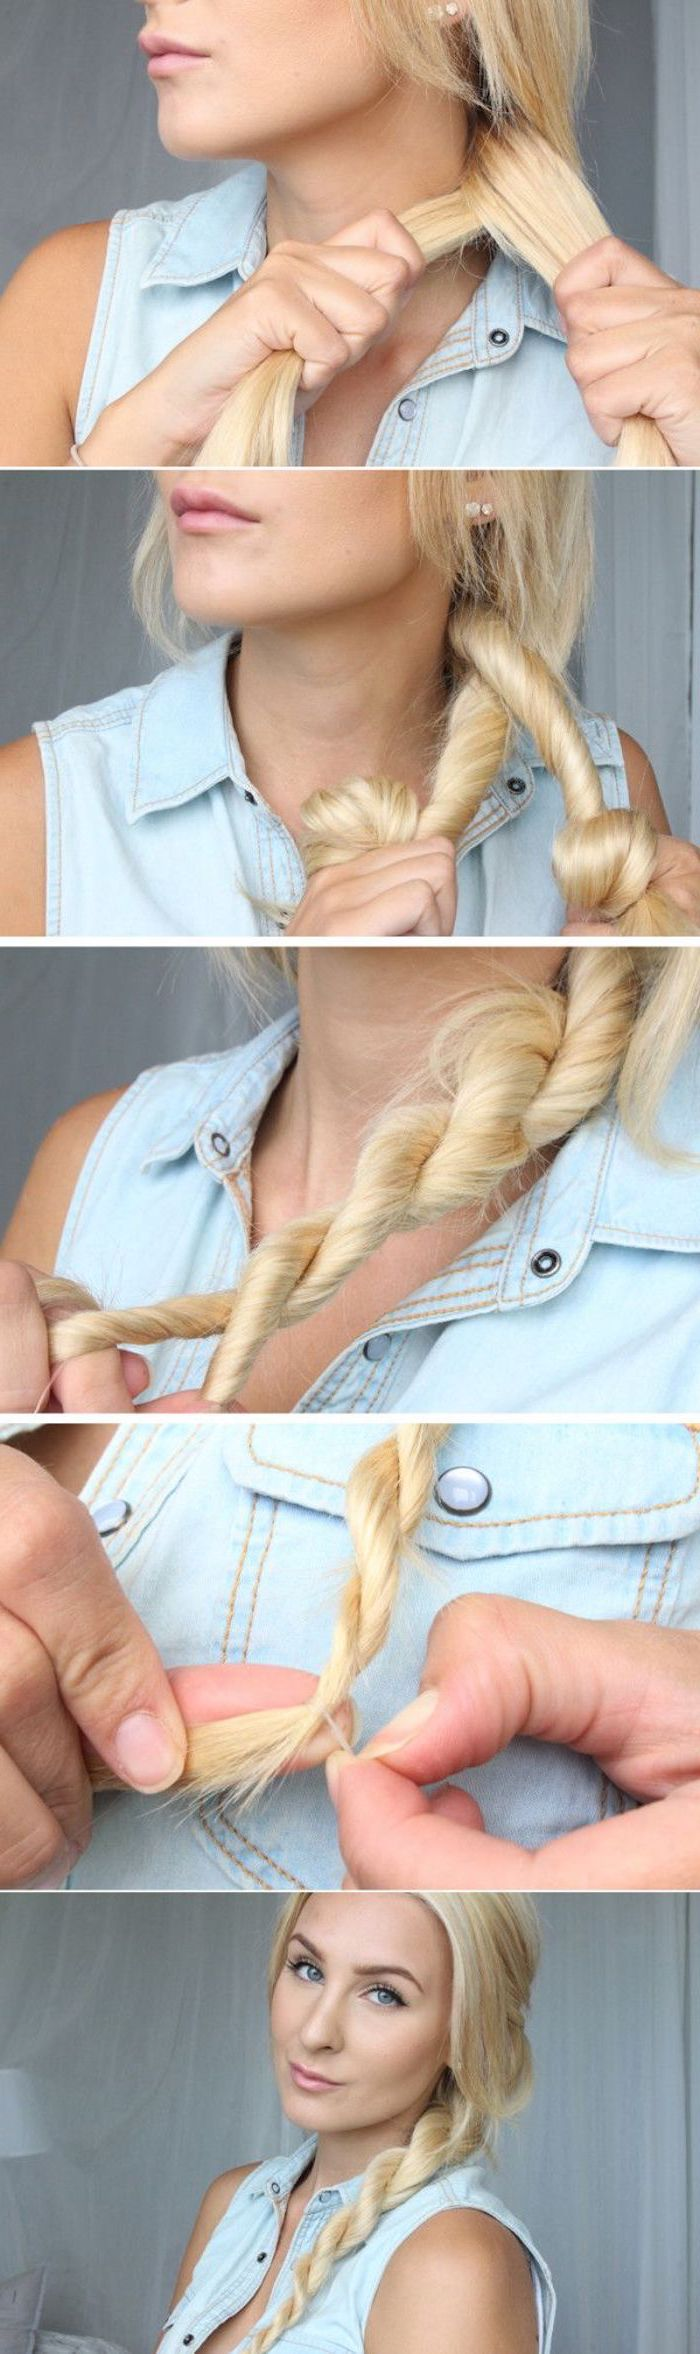 blonde woman with twisted side braid cute easy hairstyles for short hair photo collage of step by step diy tutorial